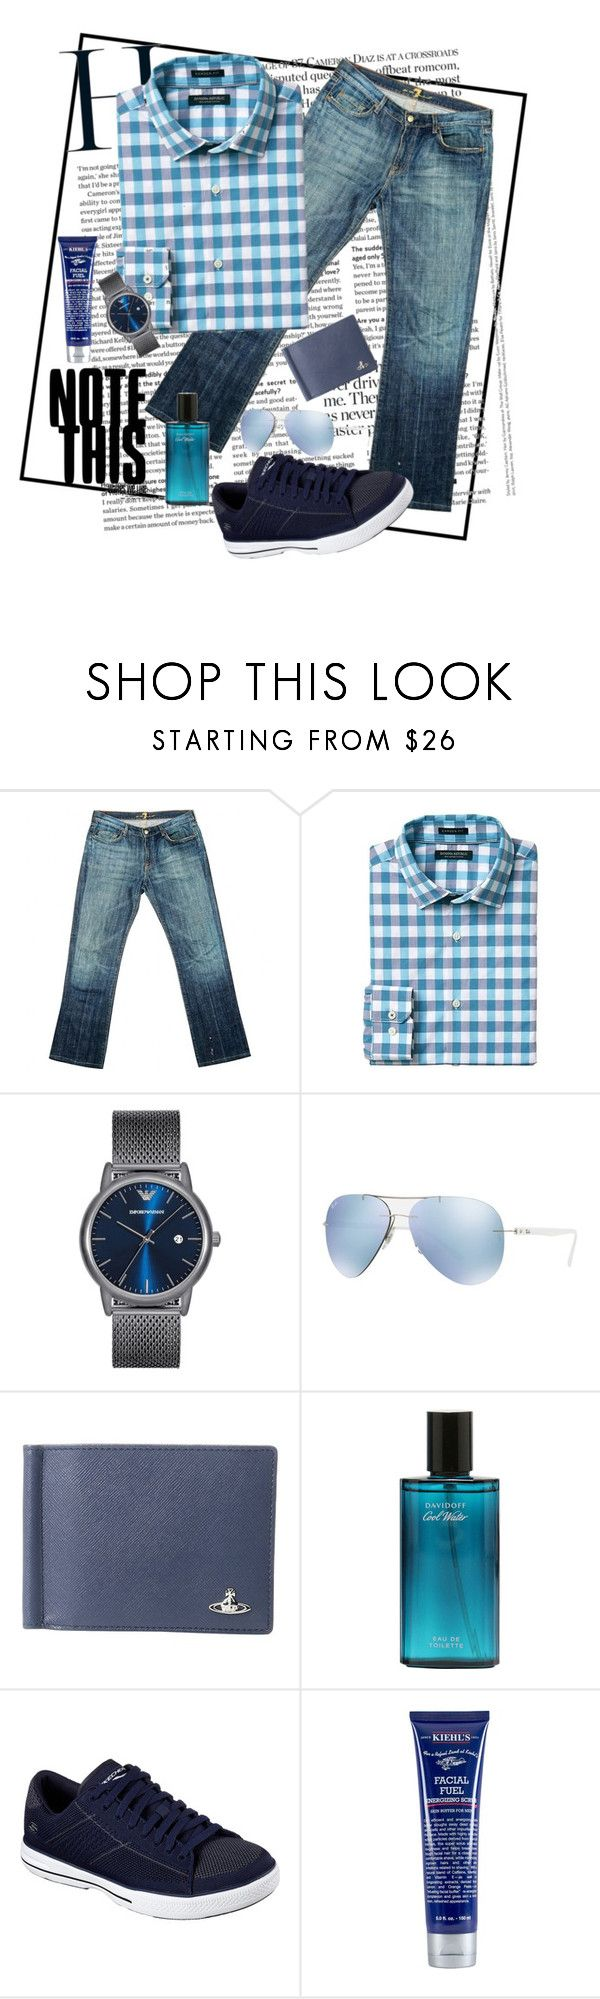 """My First Men's Fashion"" by blondemommy ❤ liked on Polyvore featuring 7 For All Mankind, Banana Republic, Emporio Armani, Ray-Ban, Vivienne Westwood, Skechers, Kiehl's, men's fashion and menswear"